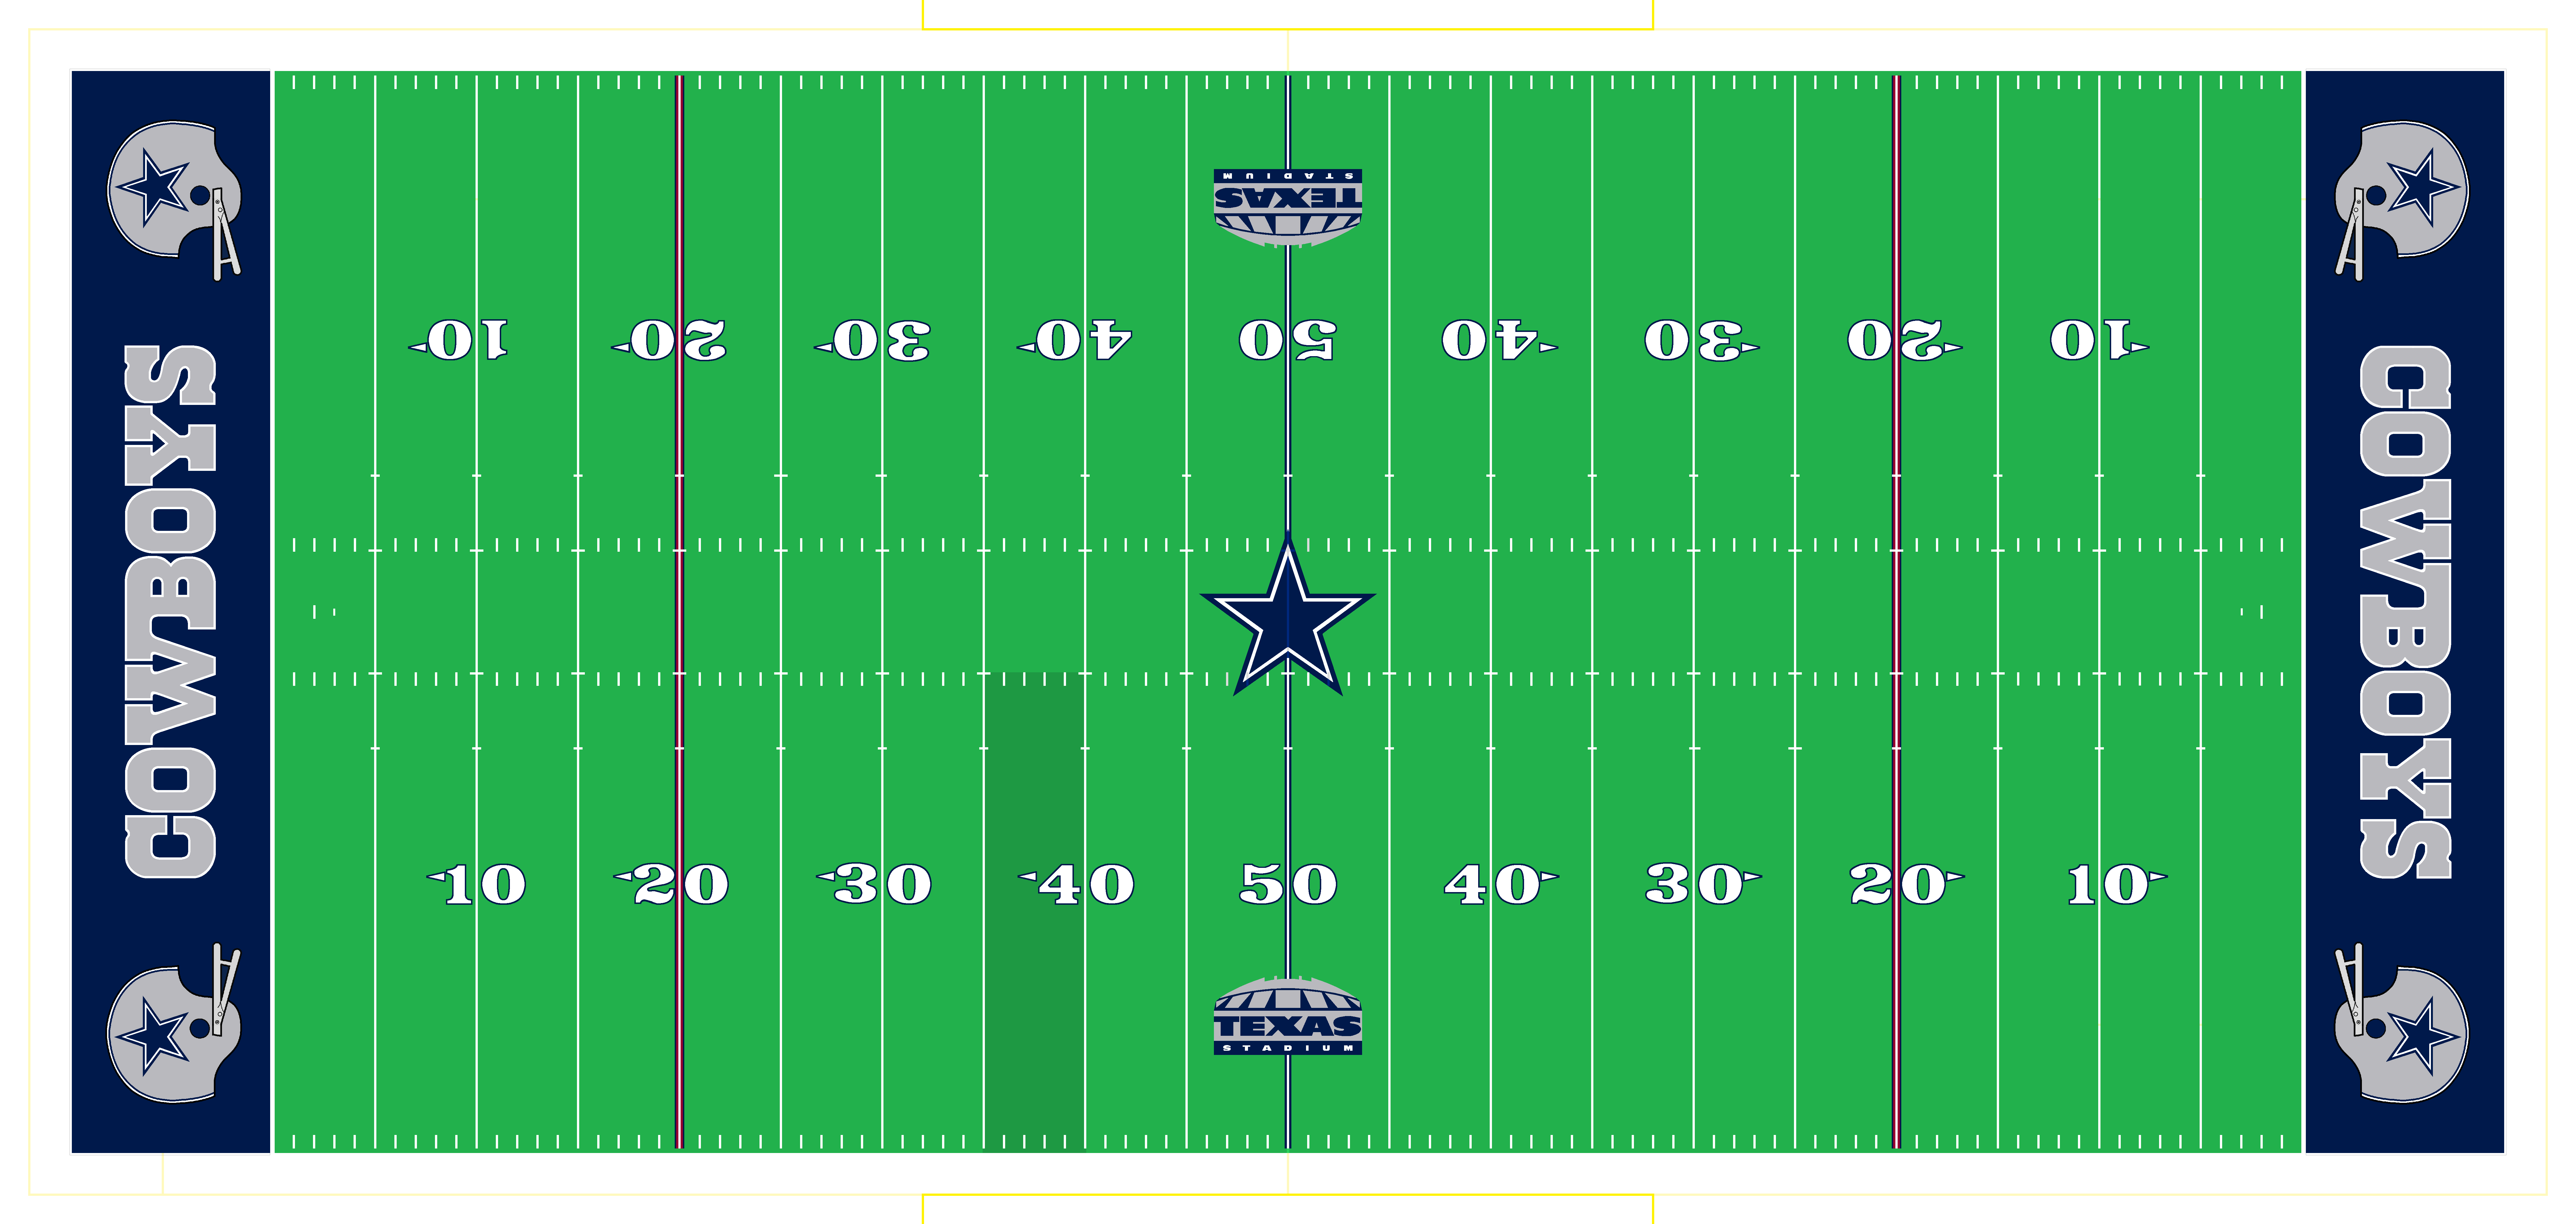 Current Nfl Fields Conference Championships Page 4 Concepts Football Field Nfl Dallas Cowboys